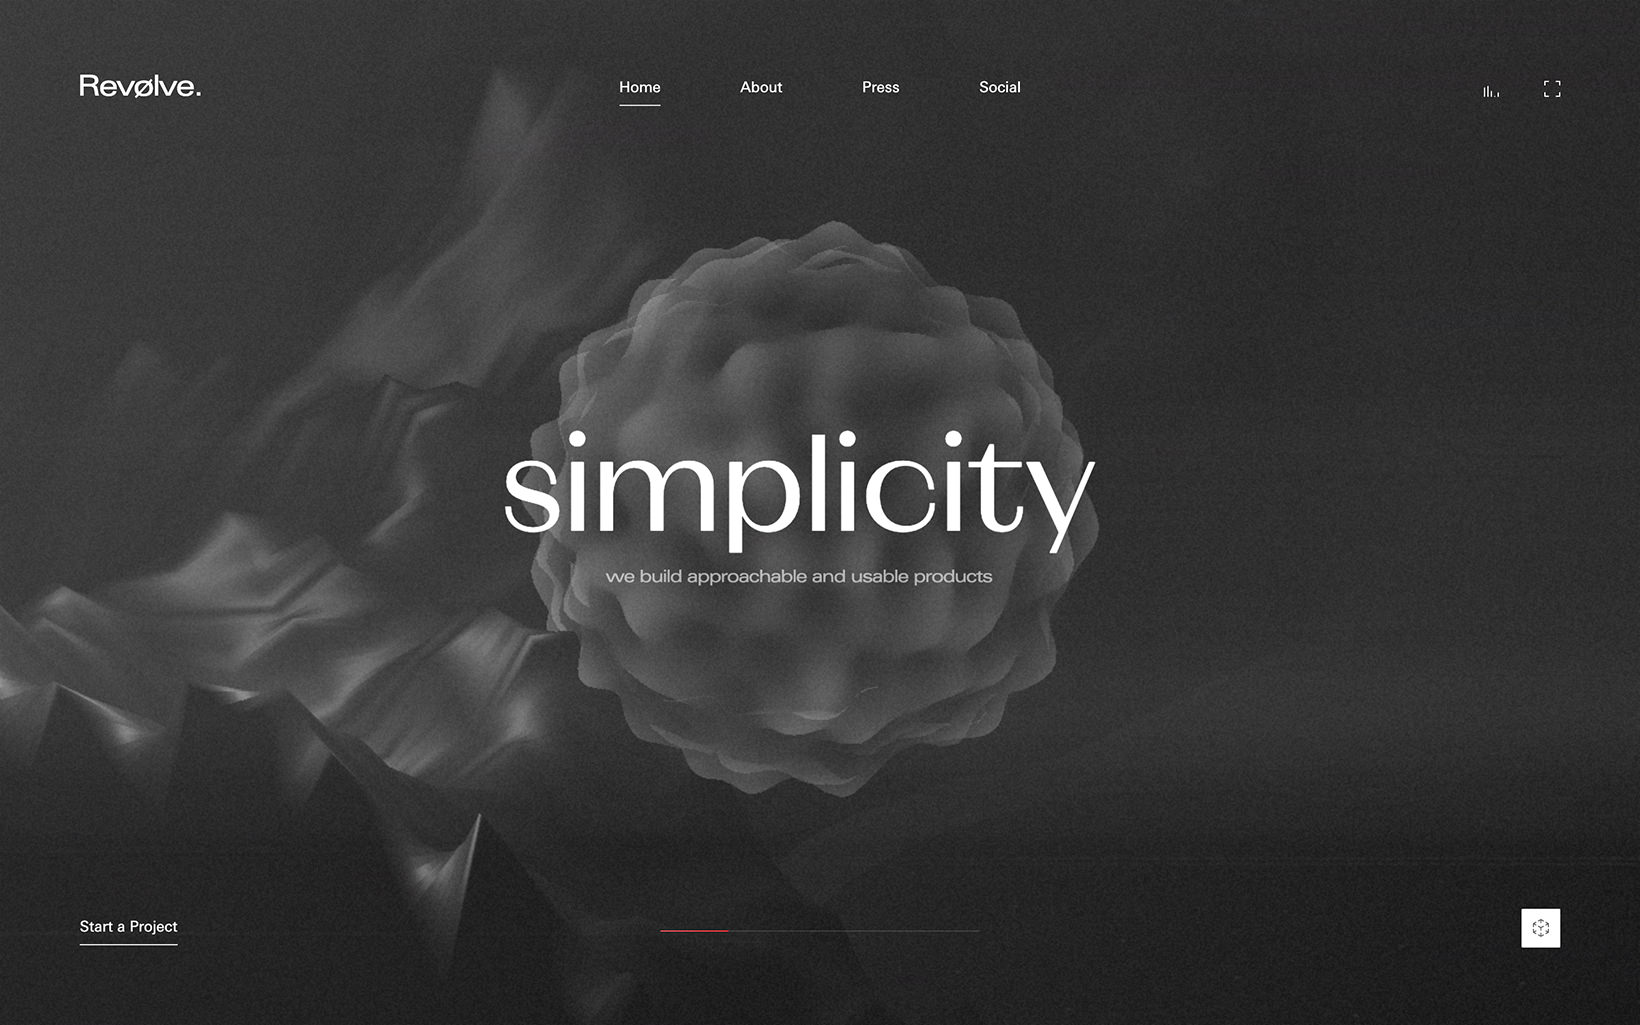 For example using black and white colors make a websites and apps appear classic and simple.